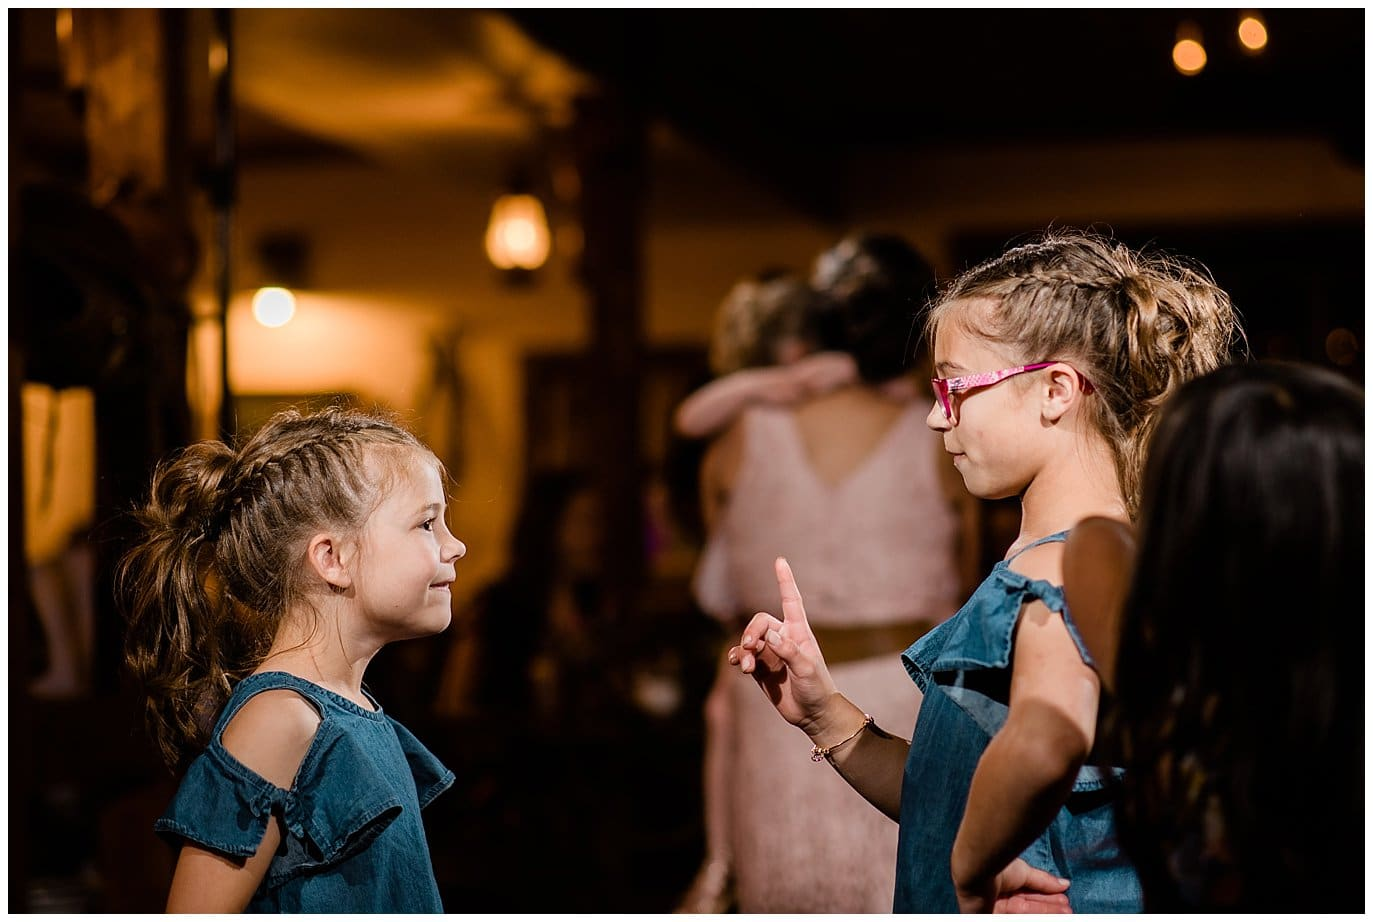 flower girls dance at reception in barn at Deer Creek Valley Ranch wedding by Colorado Wedding Photographer Jennie Crate Photographer